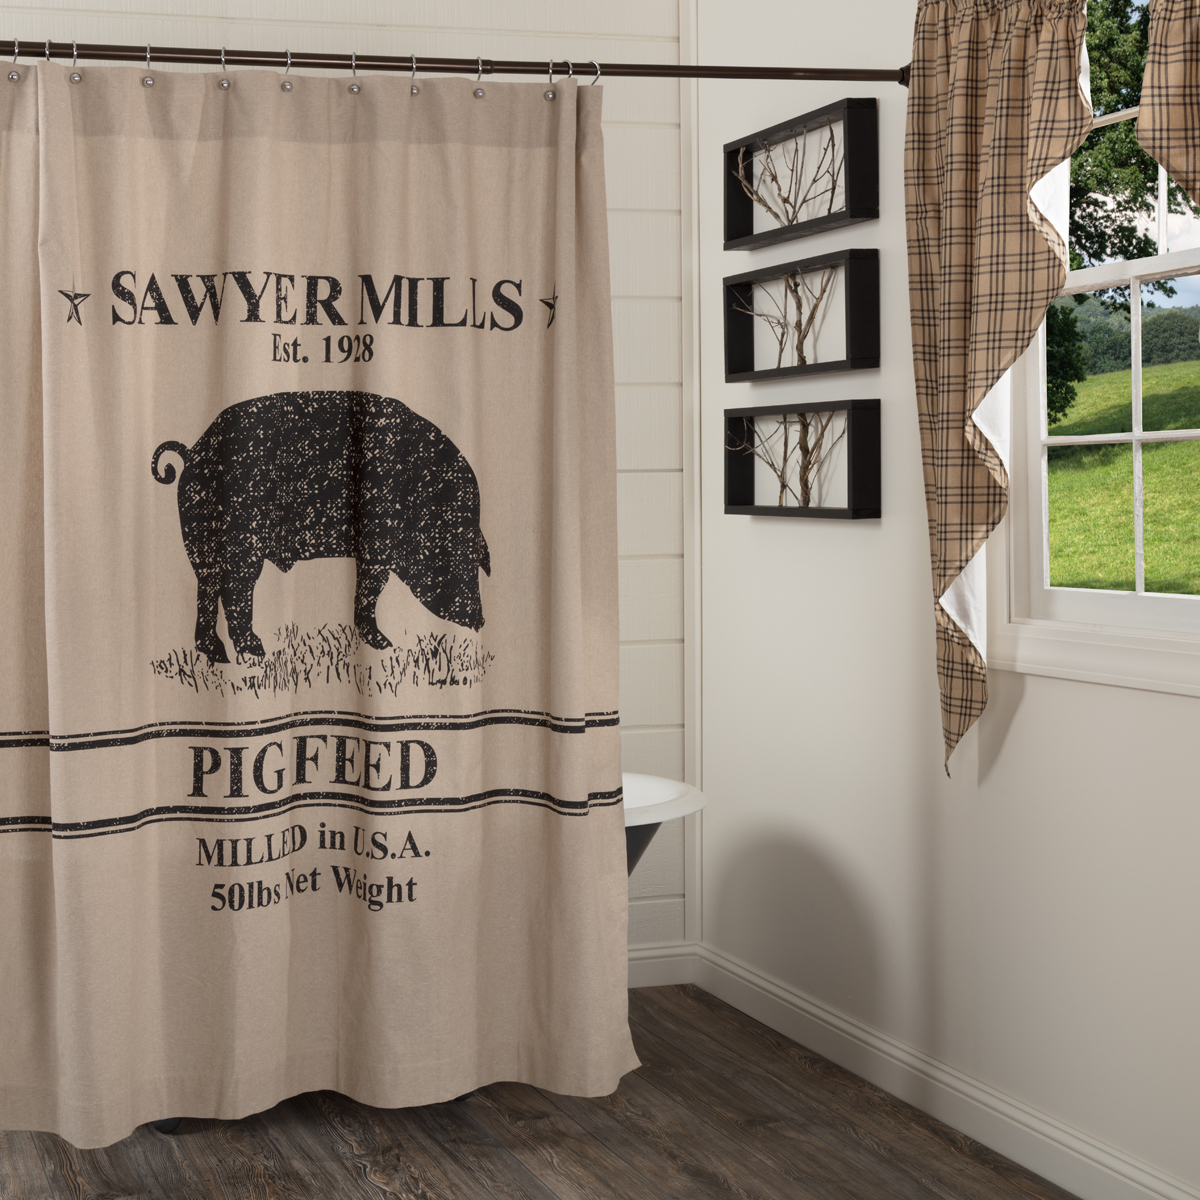 Sawyer Mill Charcoal Pig Shower Curtain DL Country Barn